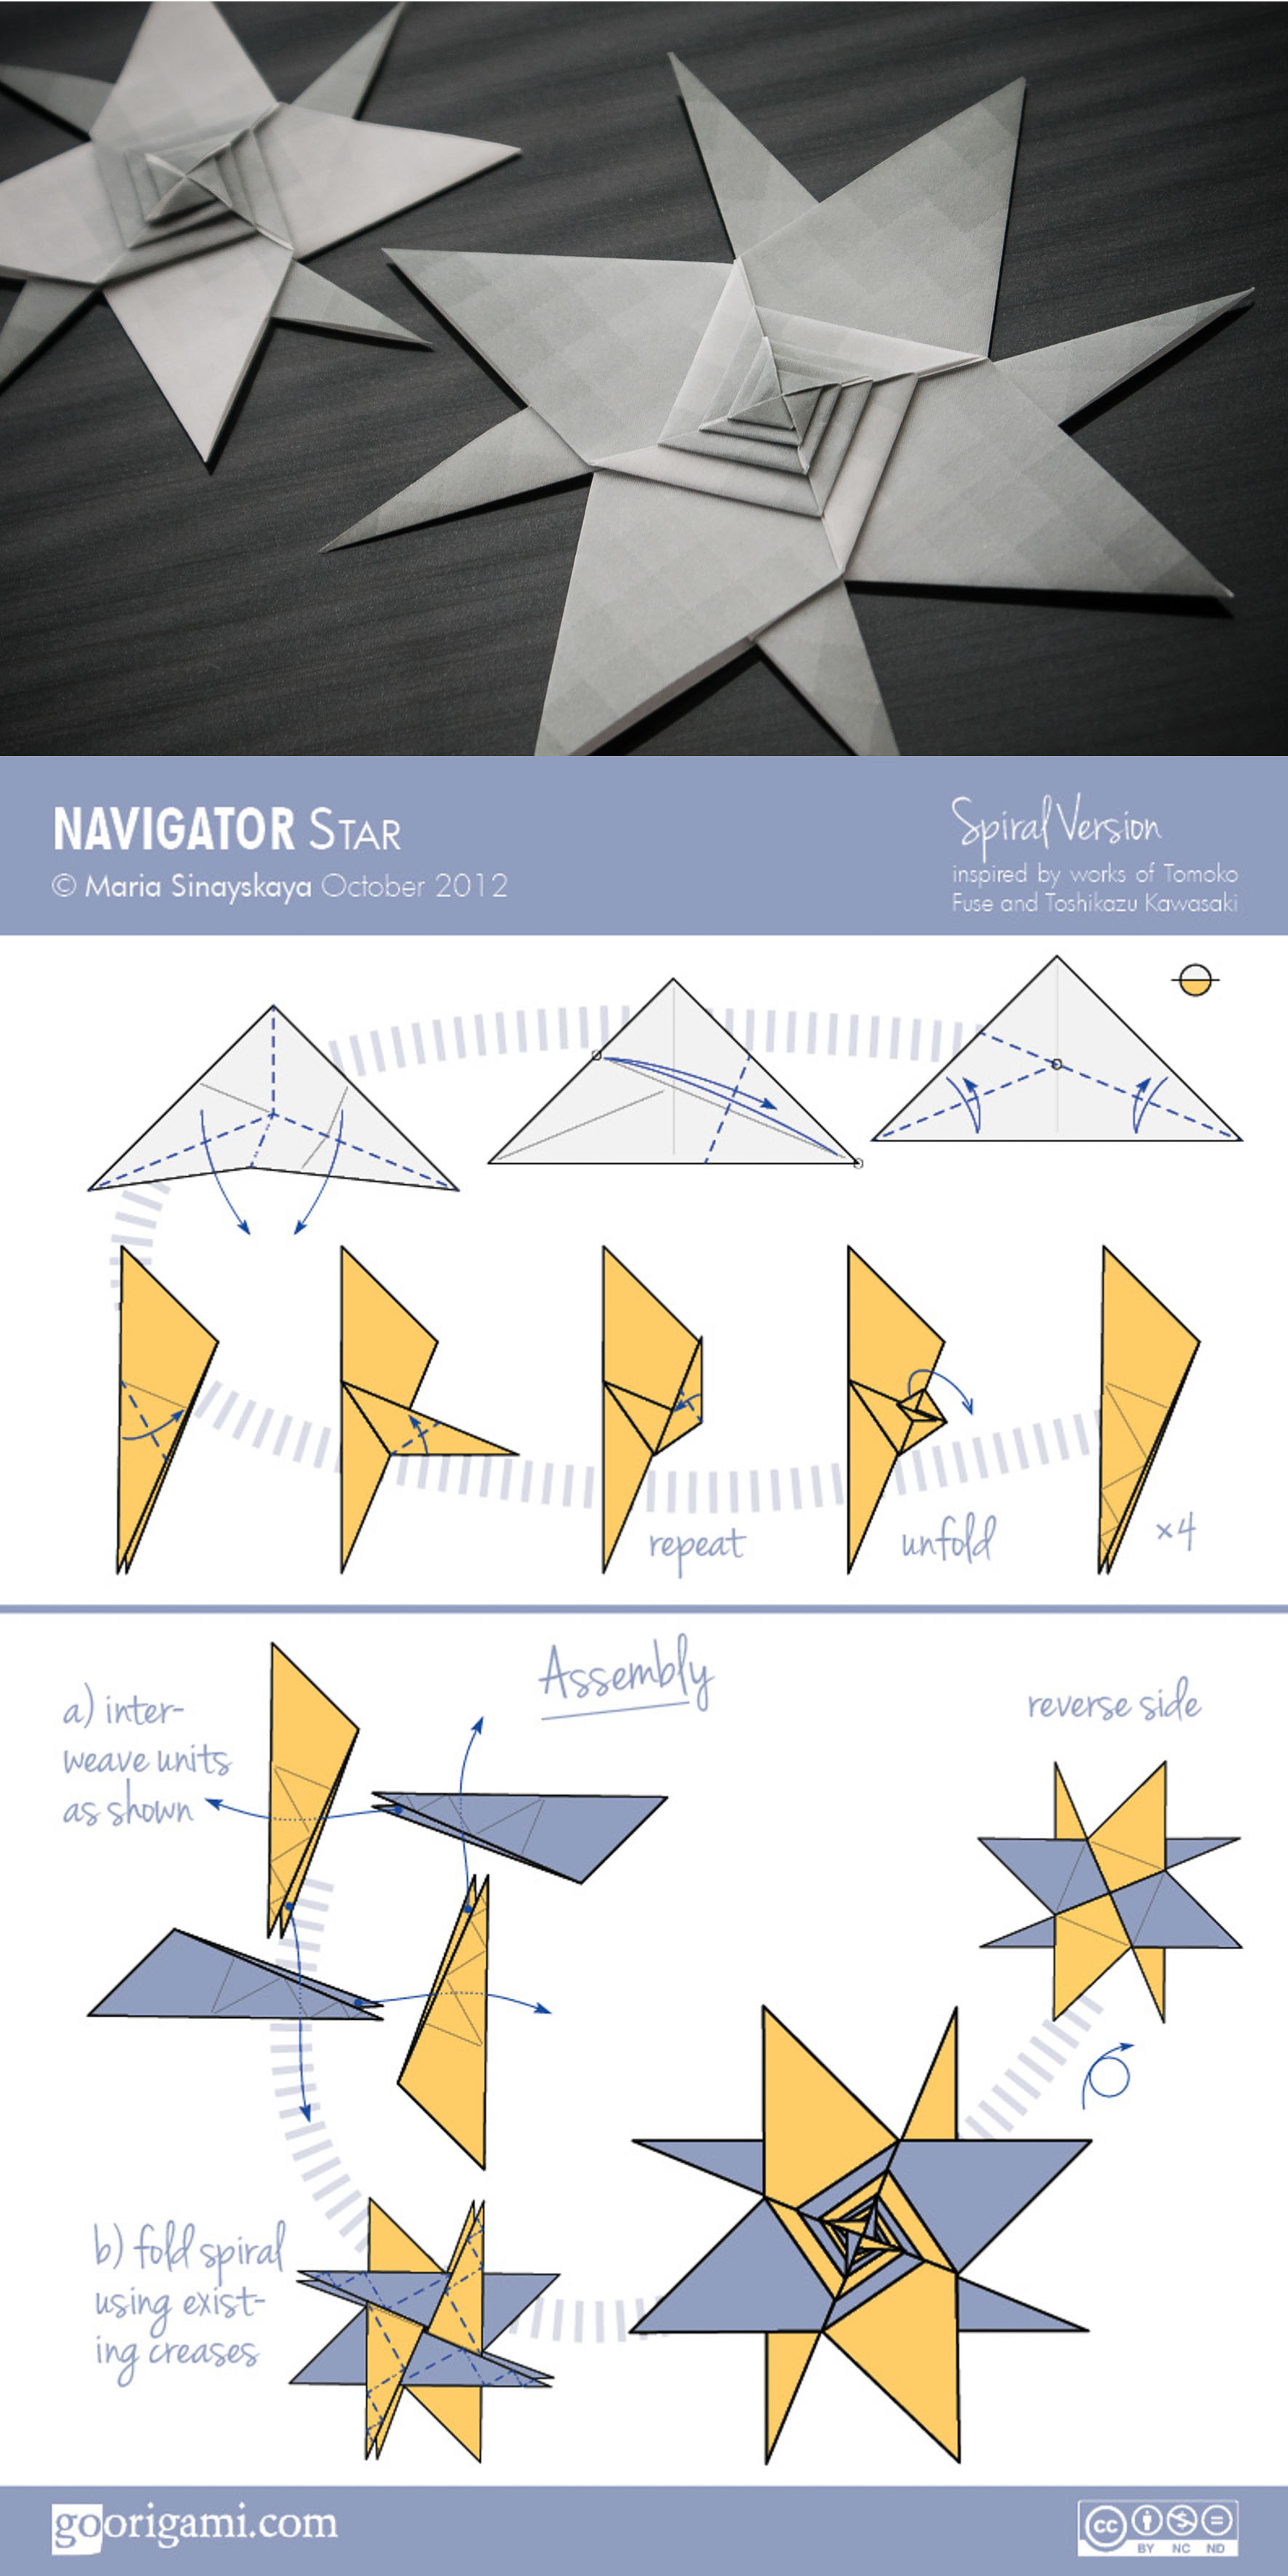 star flower origami diagram simple thermistor circuit navigator by maria sinayskaya go spiral variation